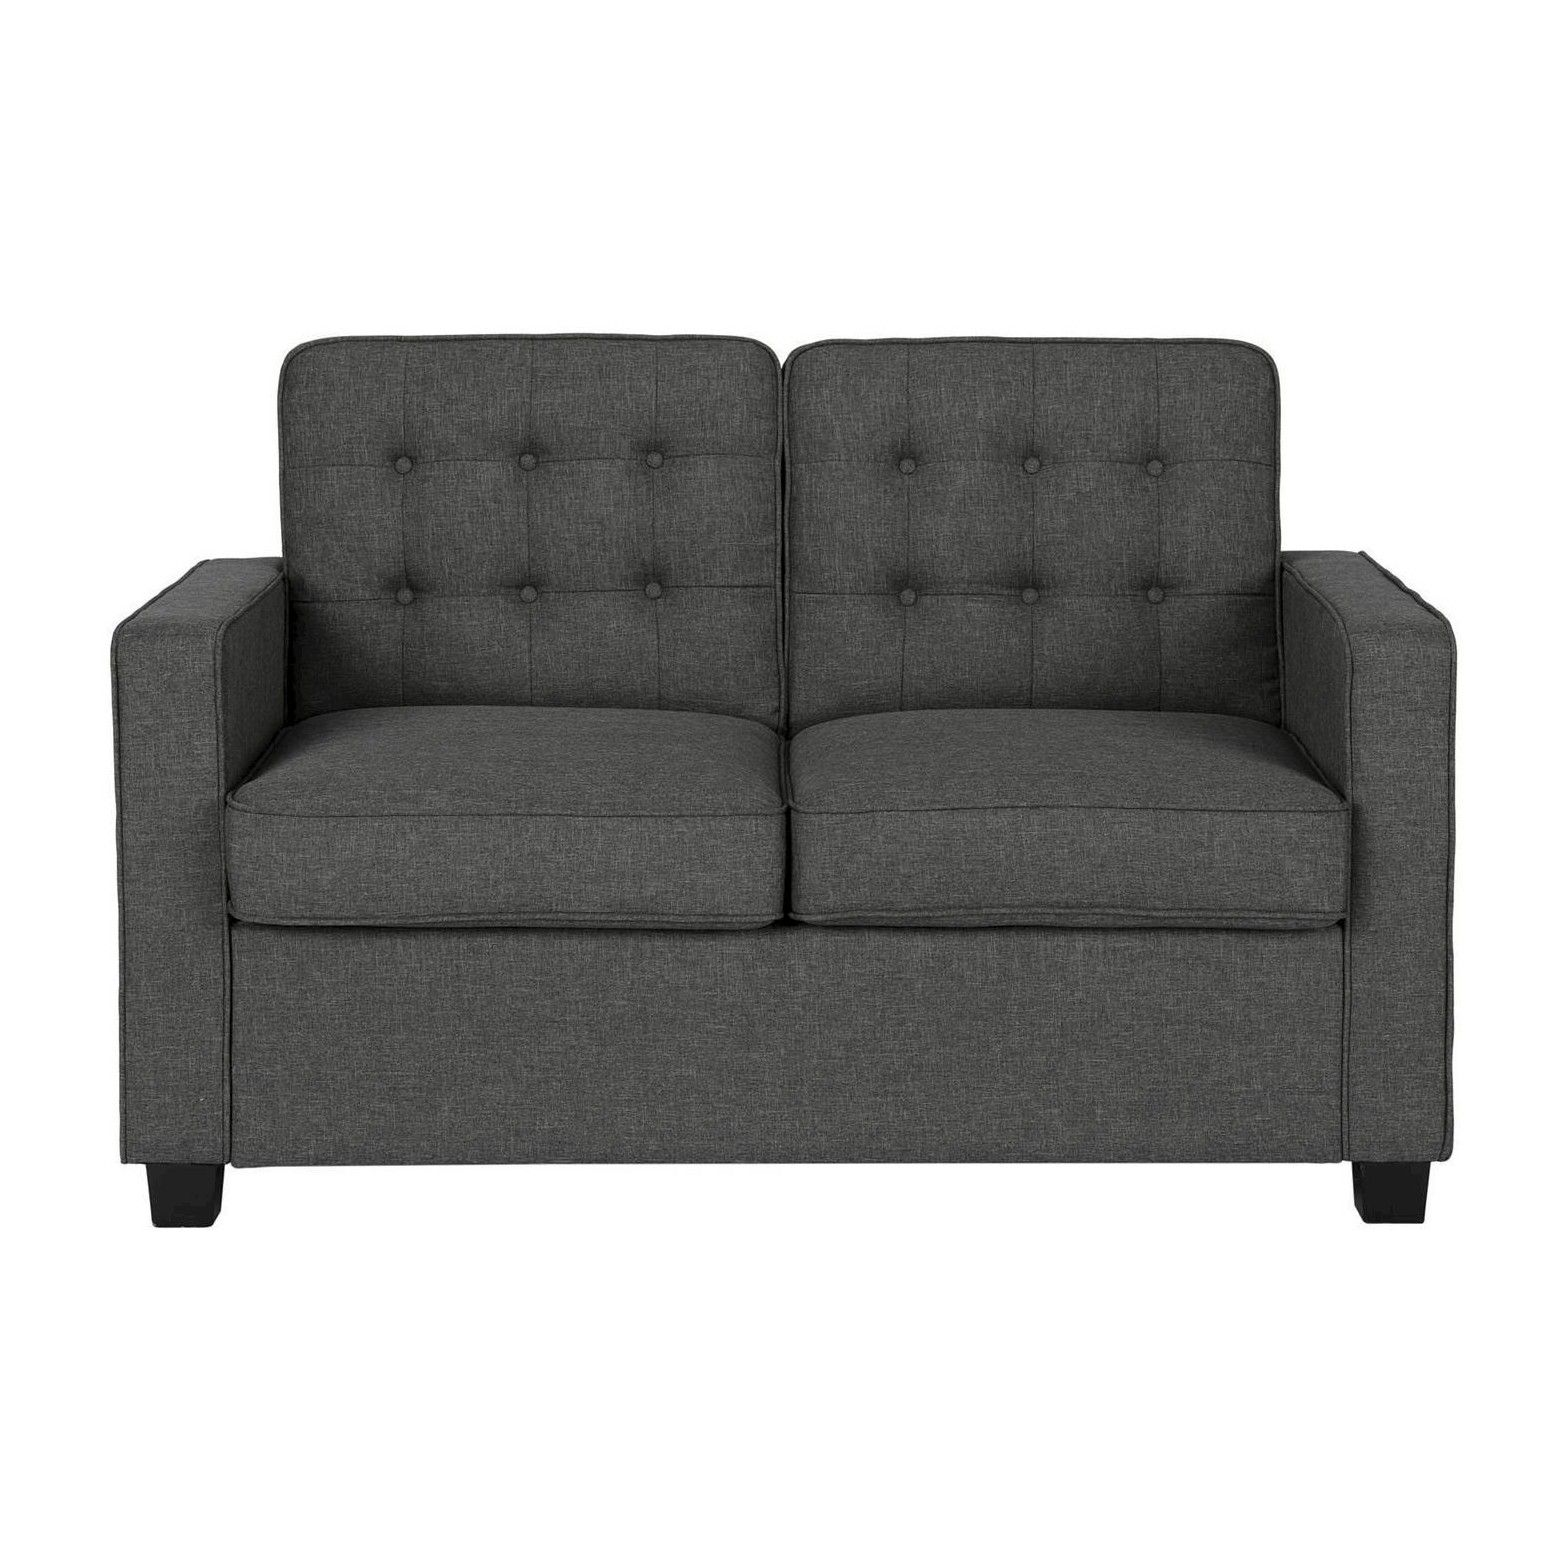 Beautiful With Its Grey Linen Upholstery, Tufted Back And Cool Modern Lines, The  Avery Sleeper Design Ideas